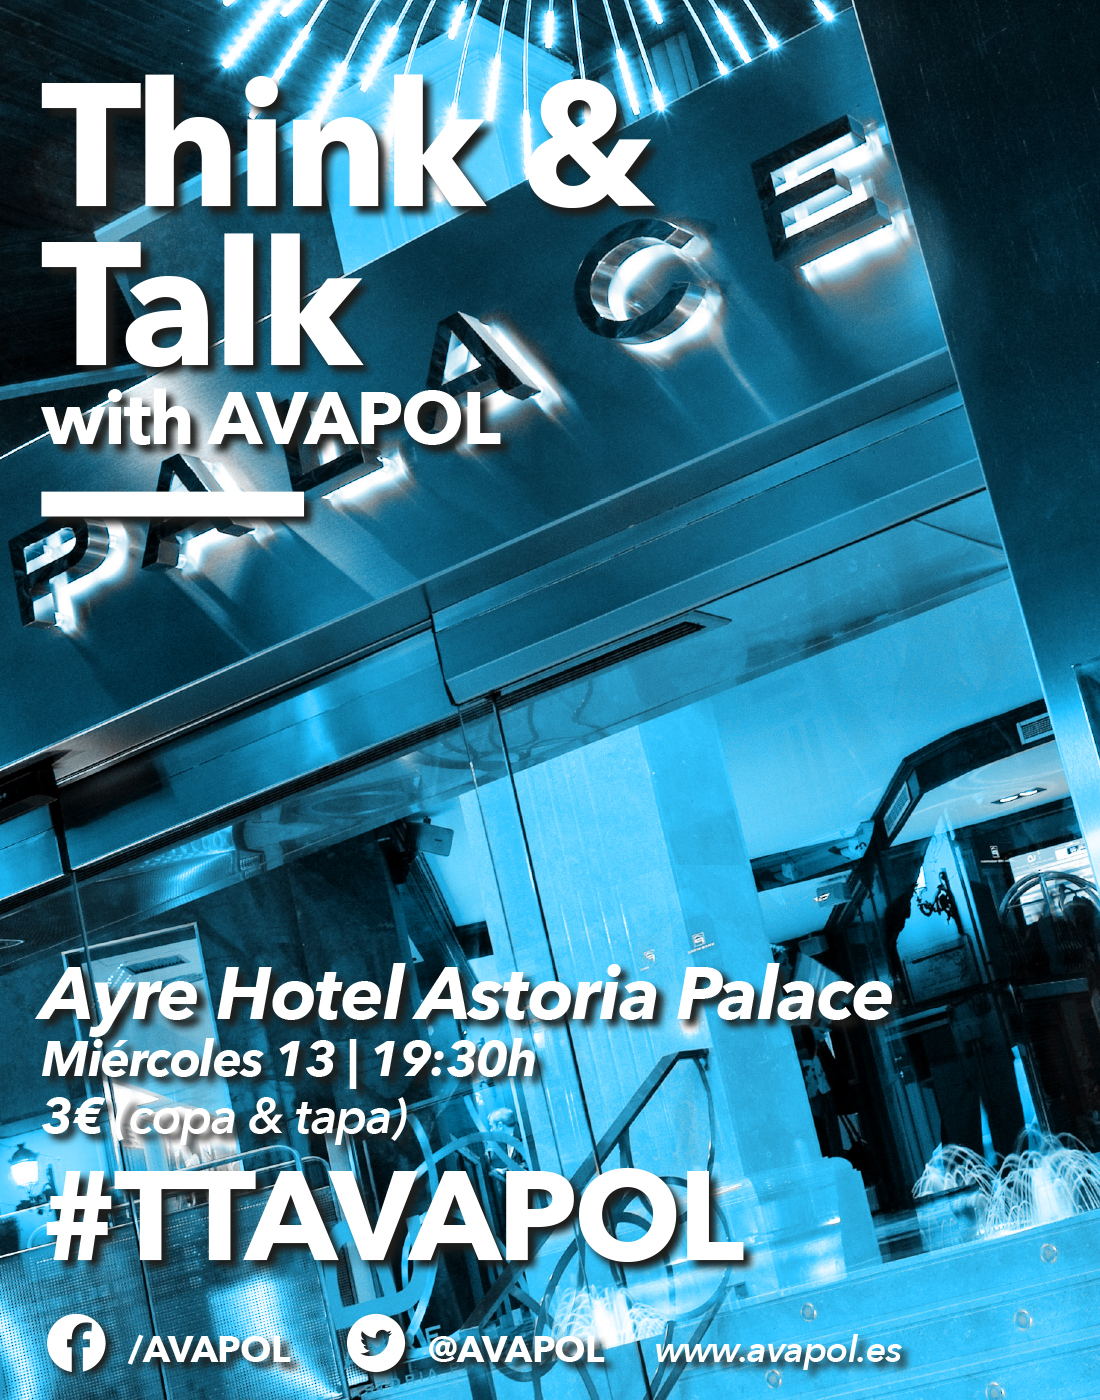 Think & Talk - TT_AVAPOL